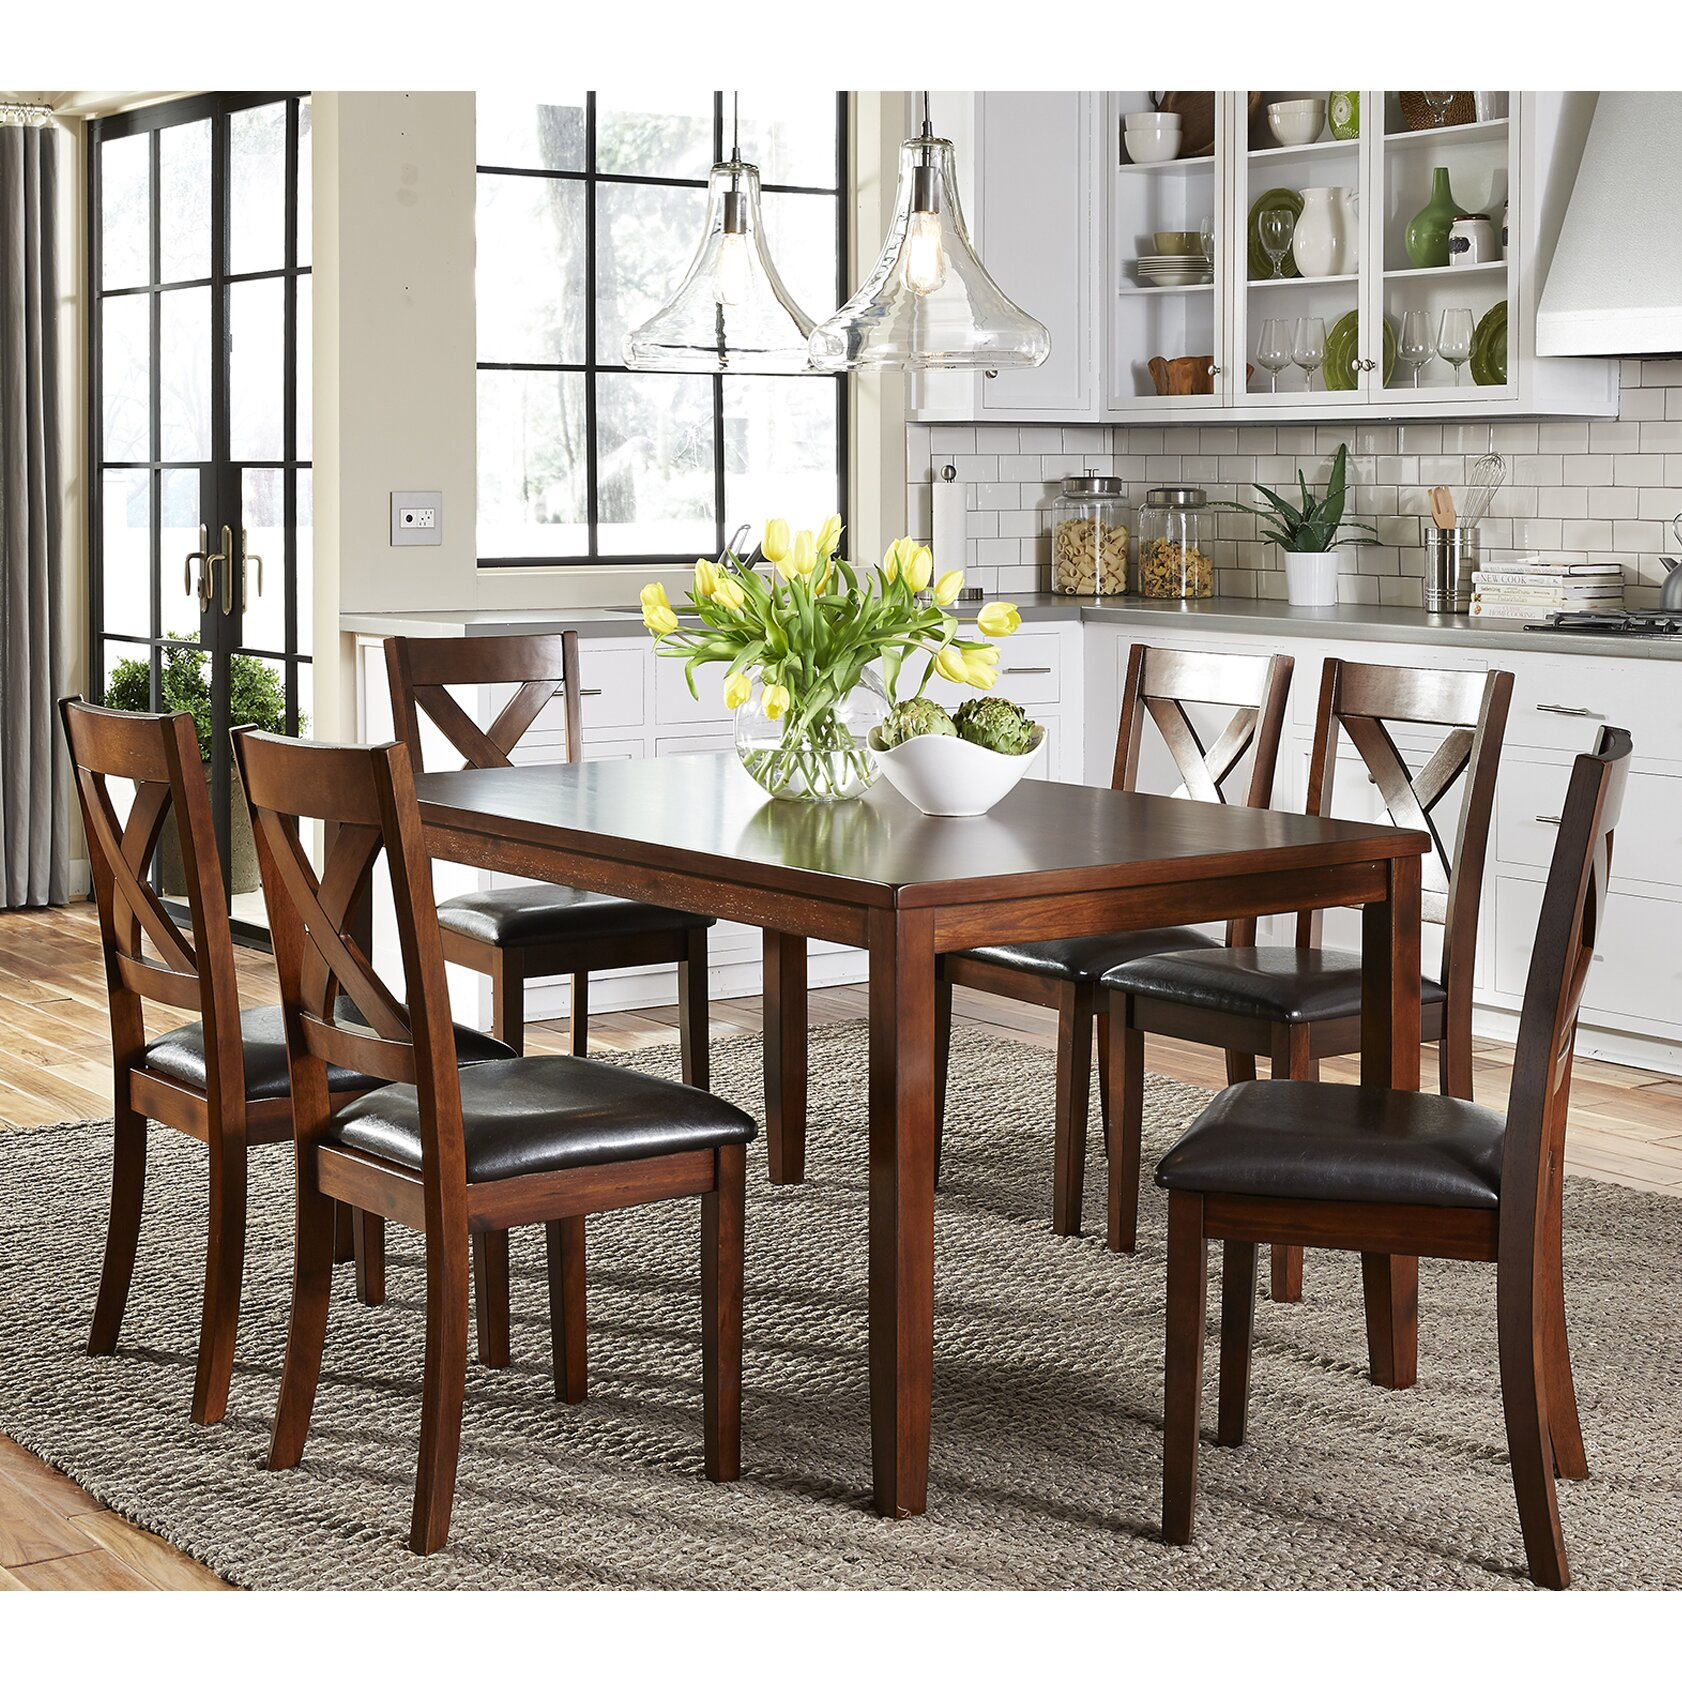 Darby Home Co Nadine 7 Piece Dining Set